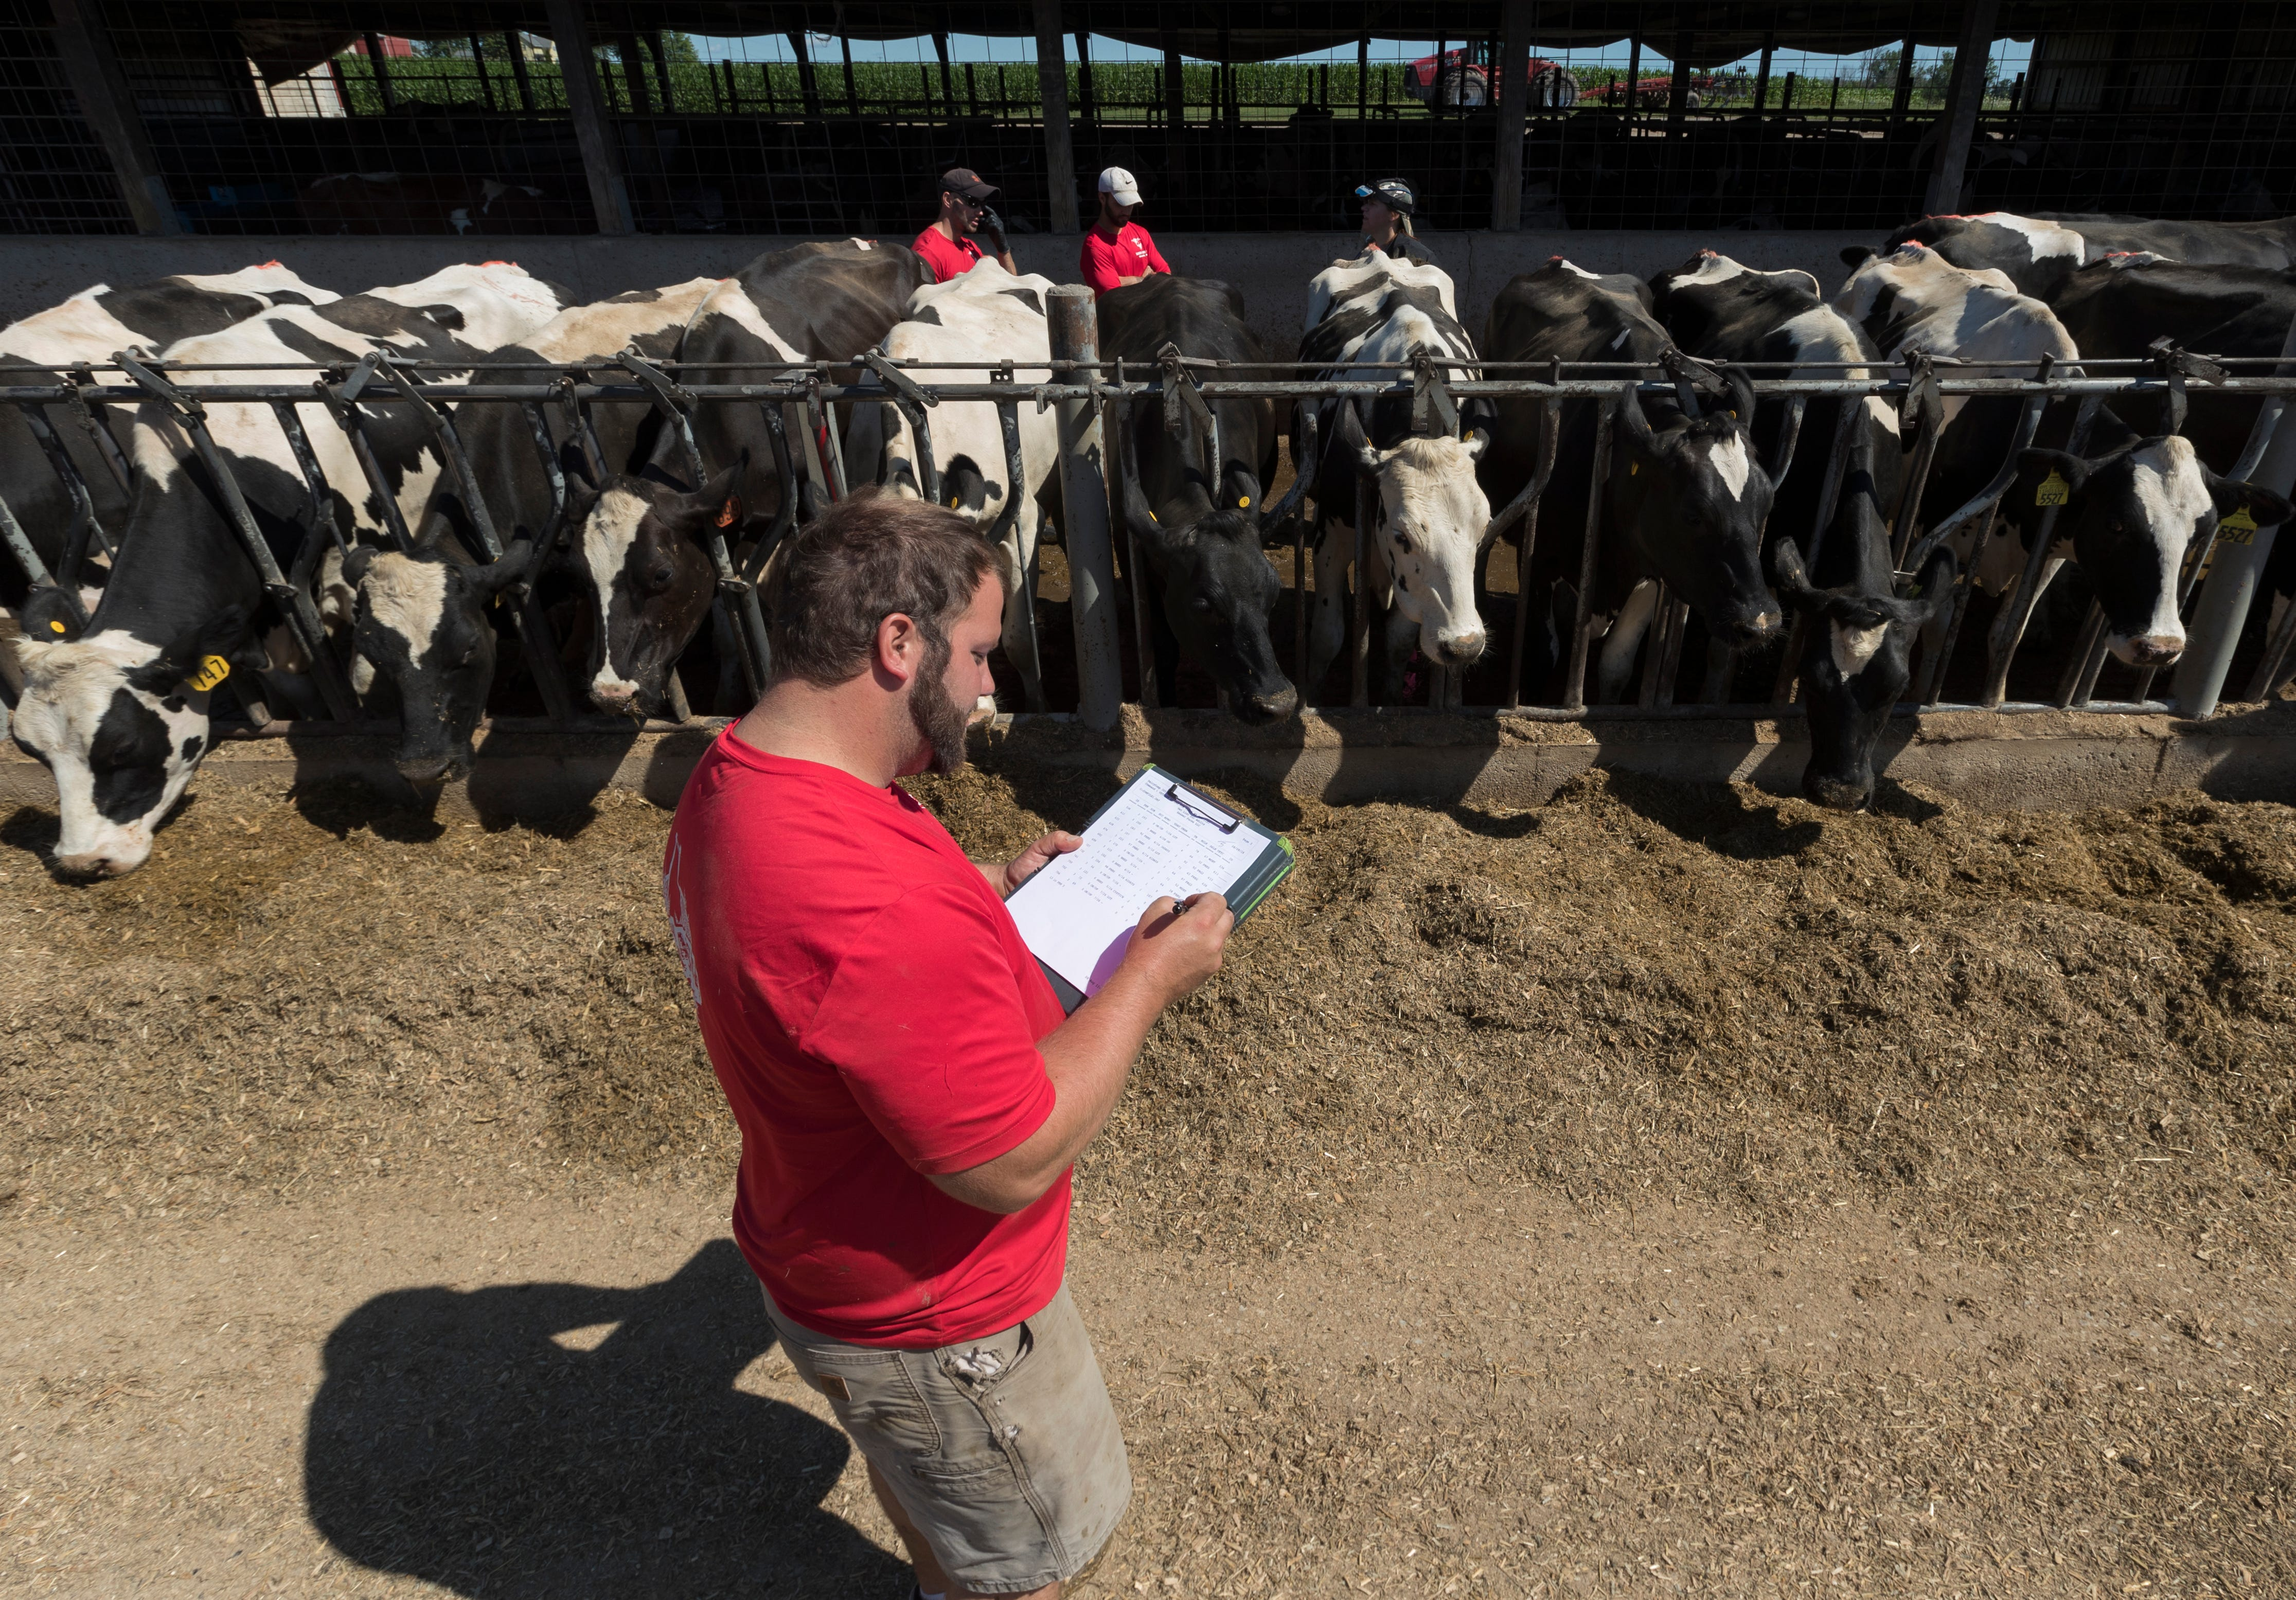 Luke Gasser, foreground, guides veterinarian Lindley Reilly to the next cow to be examined.